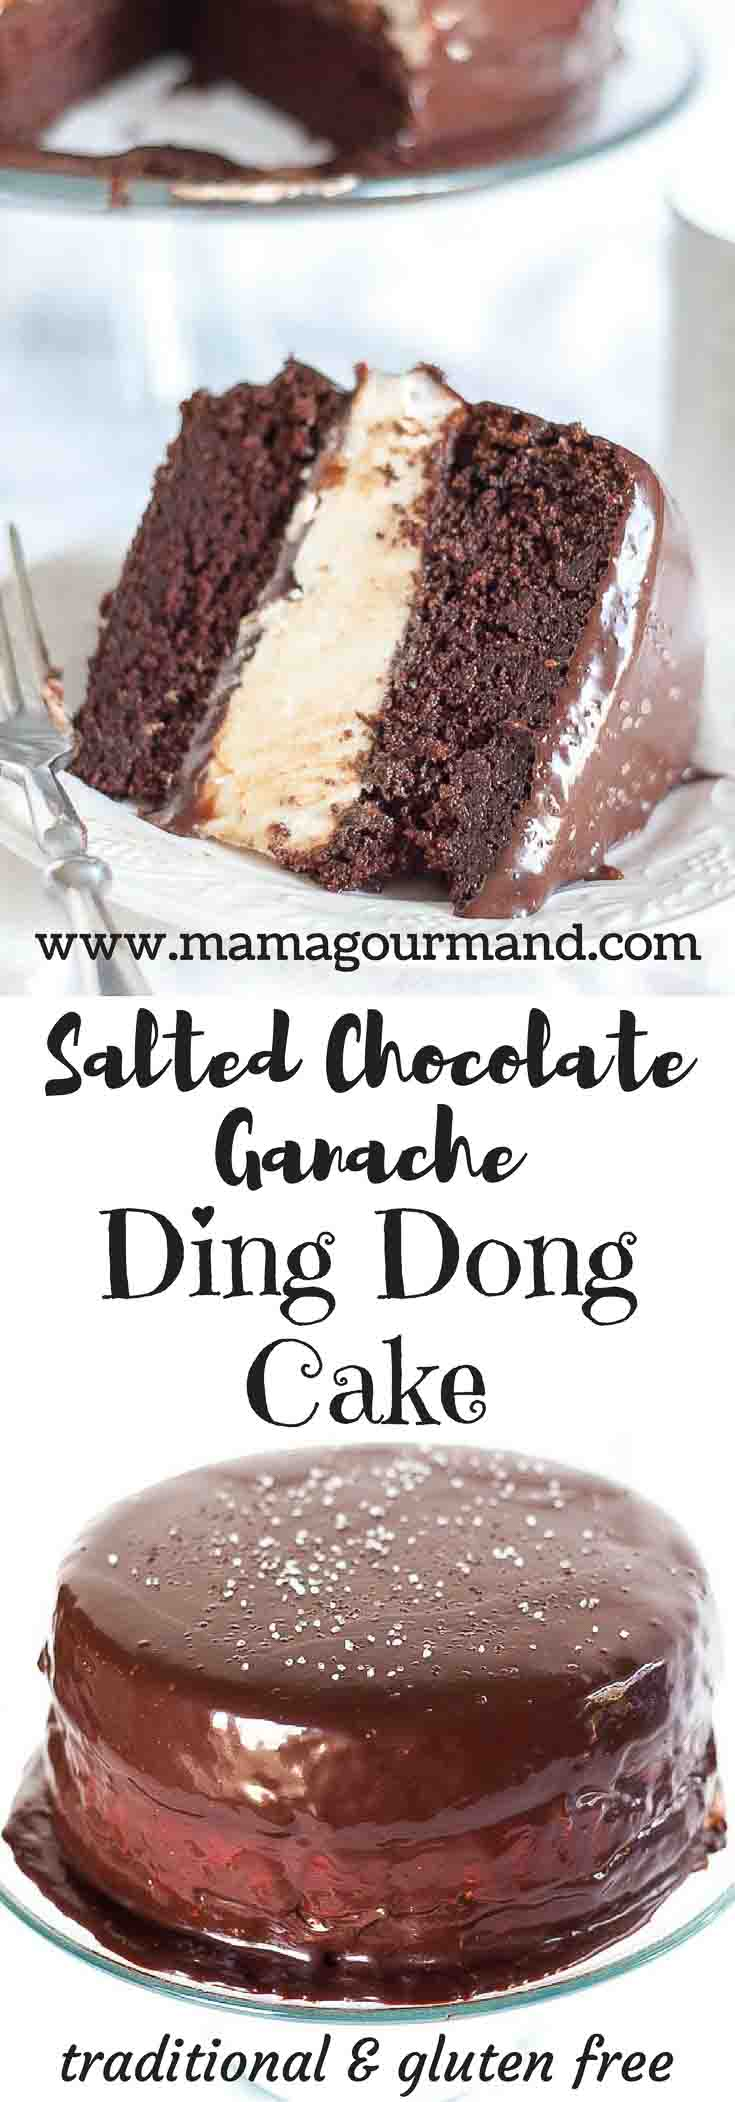 A super sized Ding Dong Cake at it's best! Salted Chocolate Ganache Ding Dong Cake has moist chocolate cake, light and fluffy filling, and salted ganache. https://www.mamagourmand.com